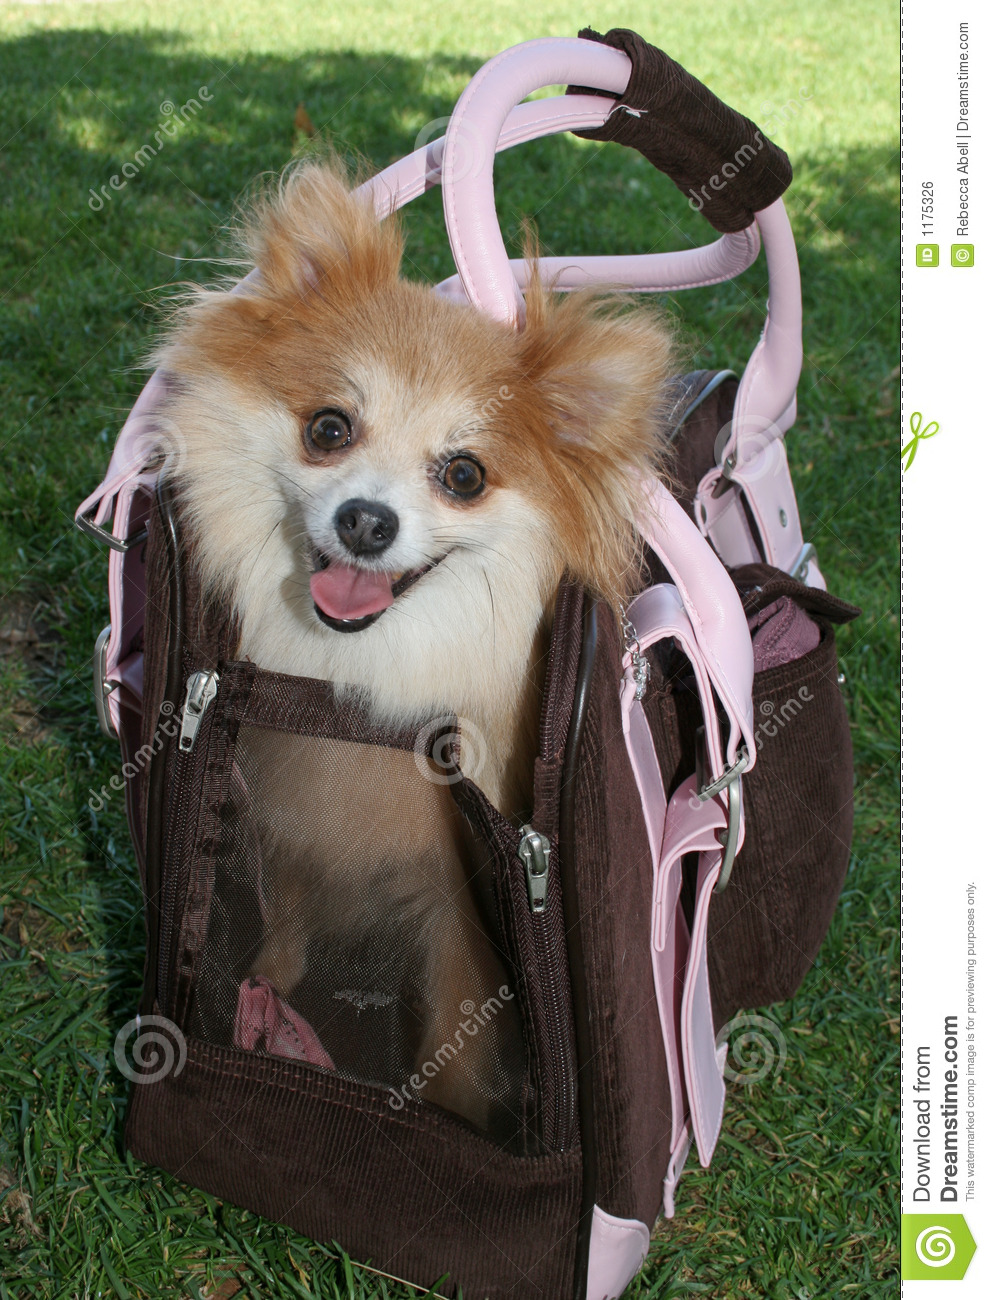 Puppy Carrier Stock Photo Image Of Green Pomeranian 1175326